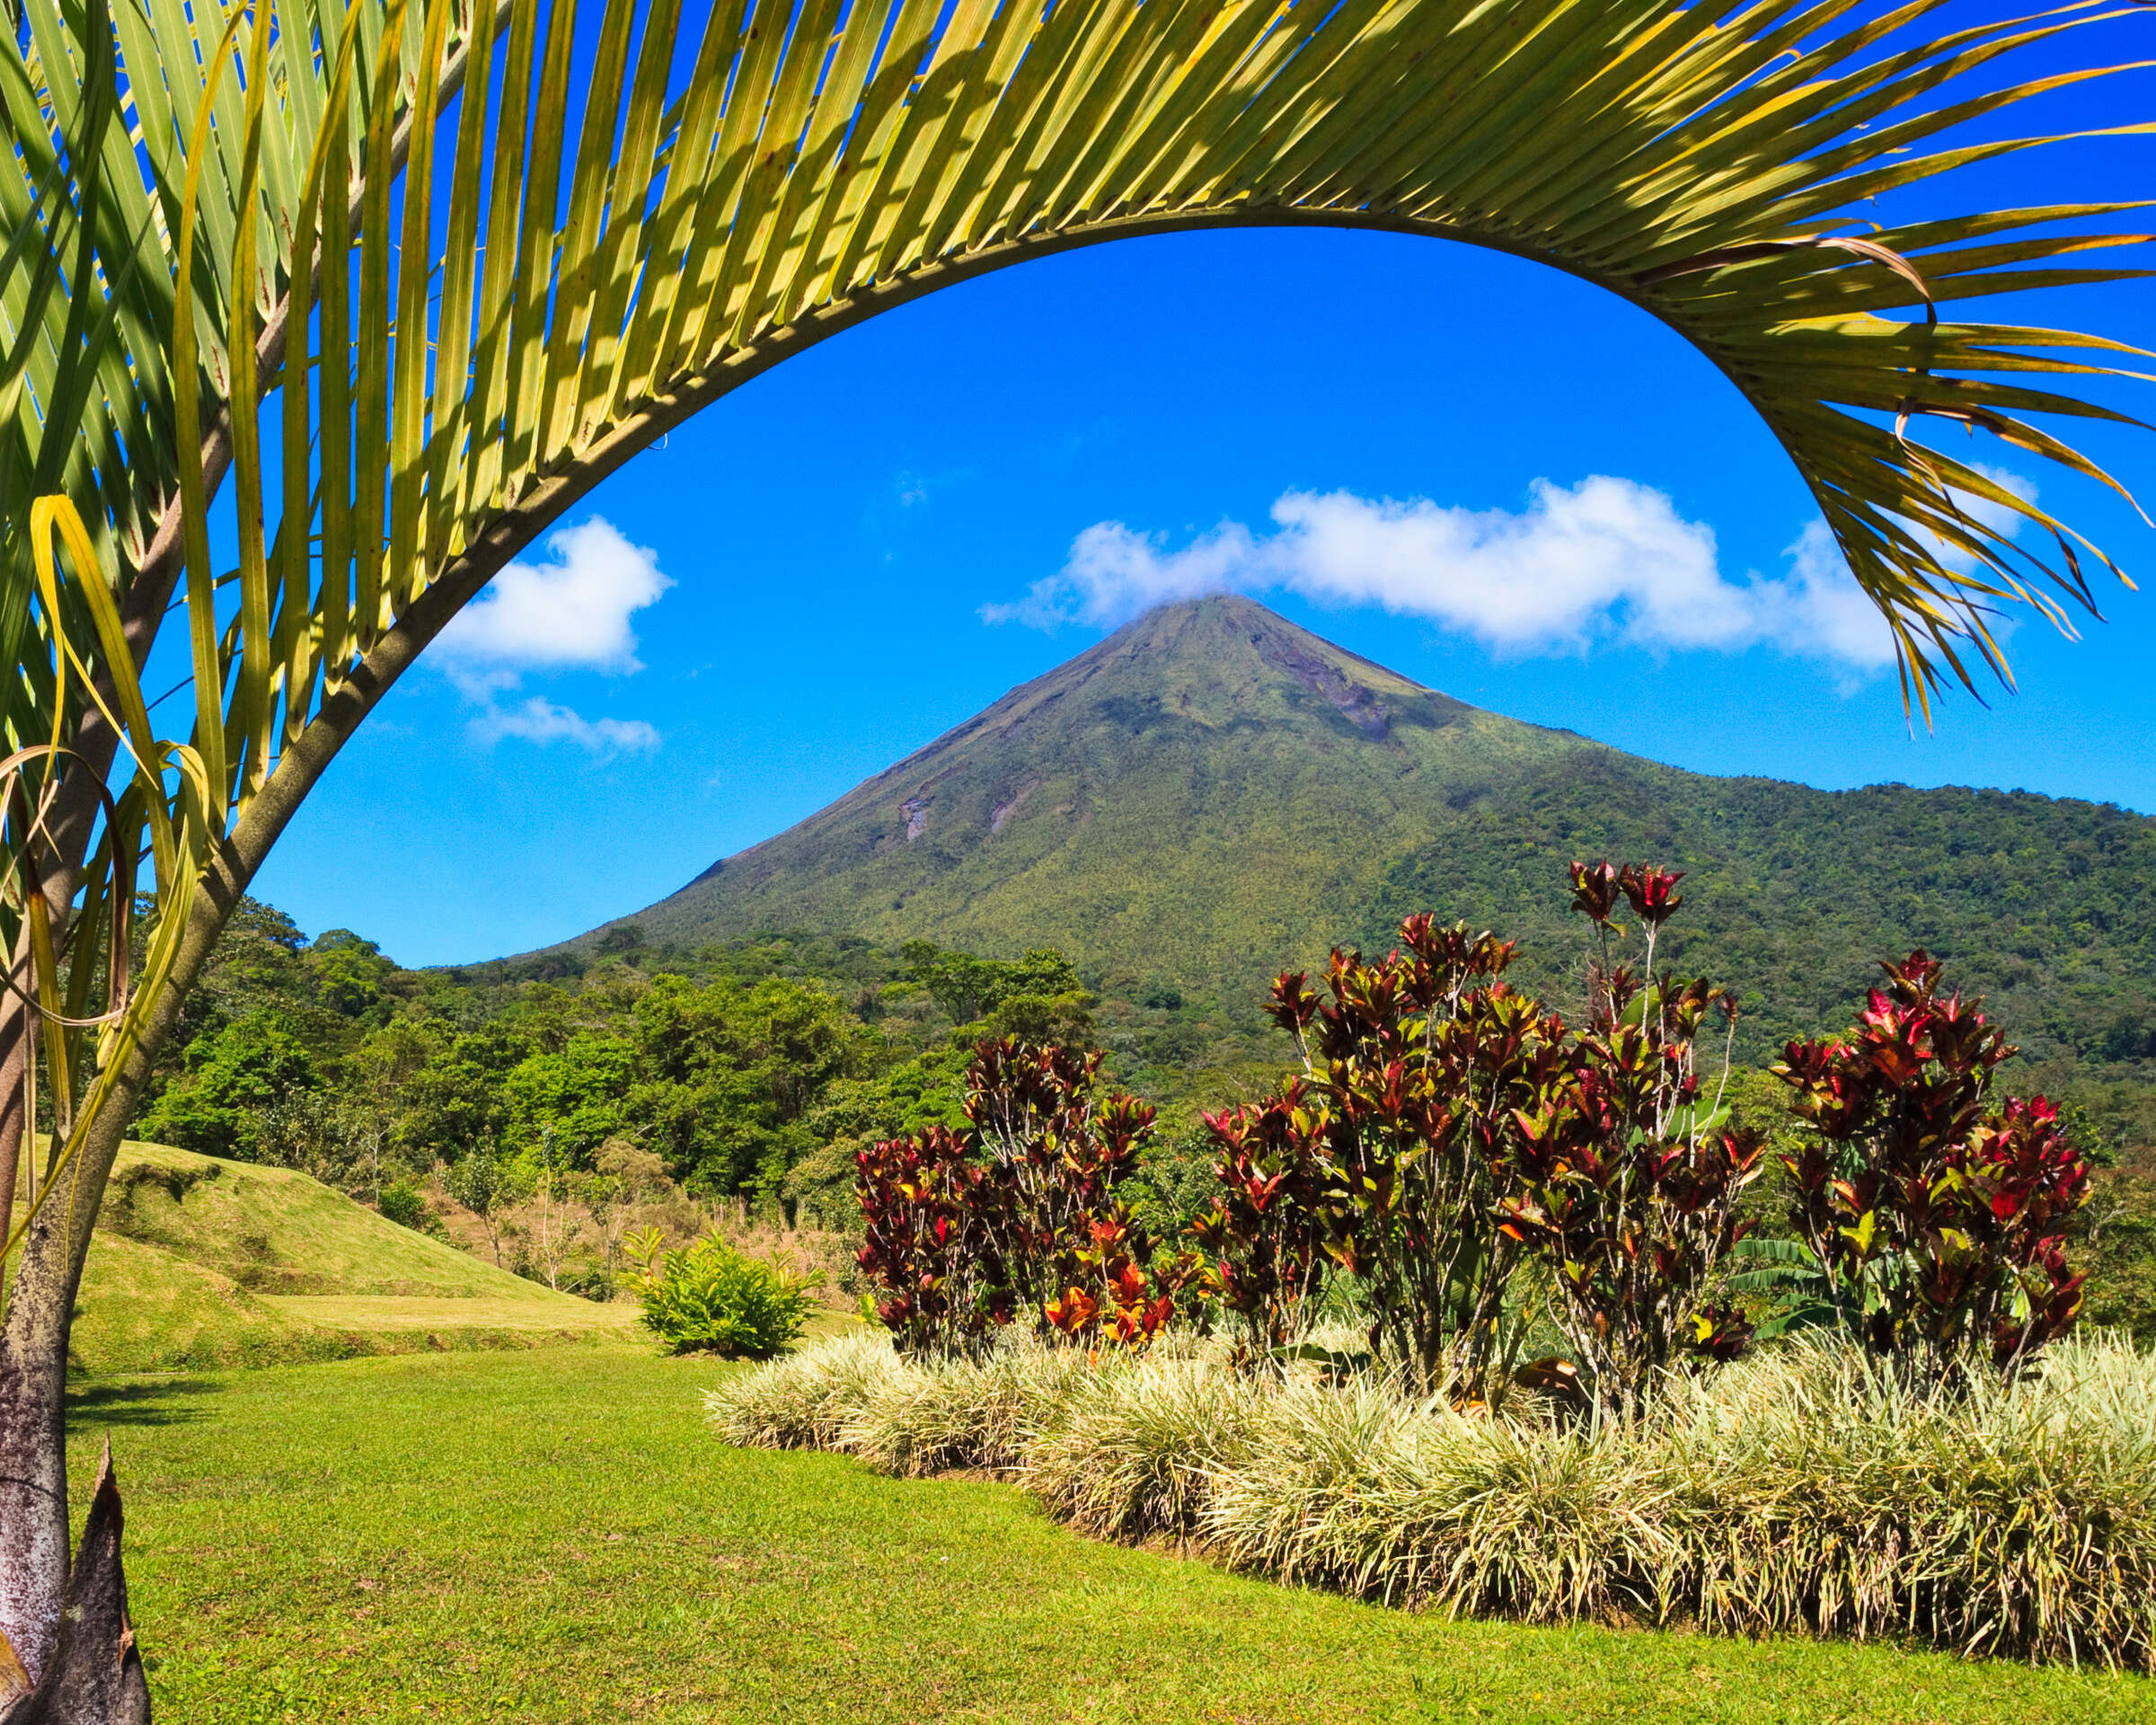 Costa Rica: A World of Nature featuring Tortuguero National Park, Arenal Volcano & Manuel Antonio National Park